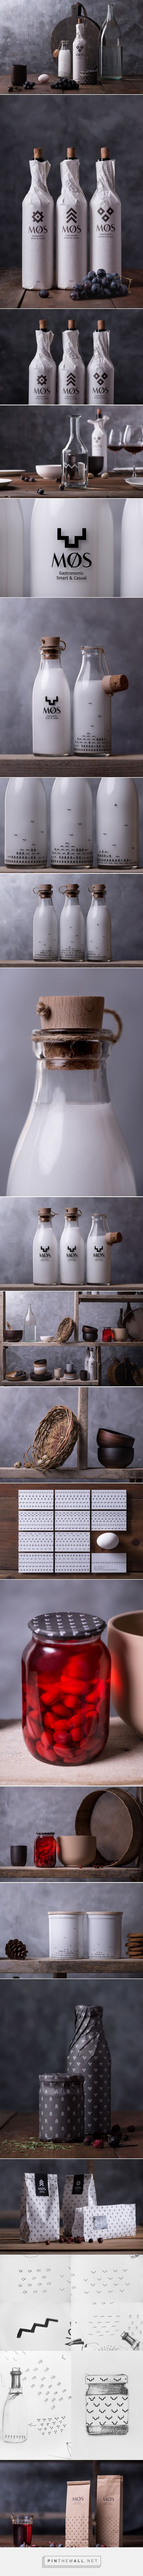 MØS Gastronomic Smart & Casual - Packaging of the World - Creative Package Design Gallery - http://www.packagingoftheworld.com/2016/02/ms-gastronomic-smart-casual.html